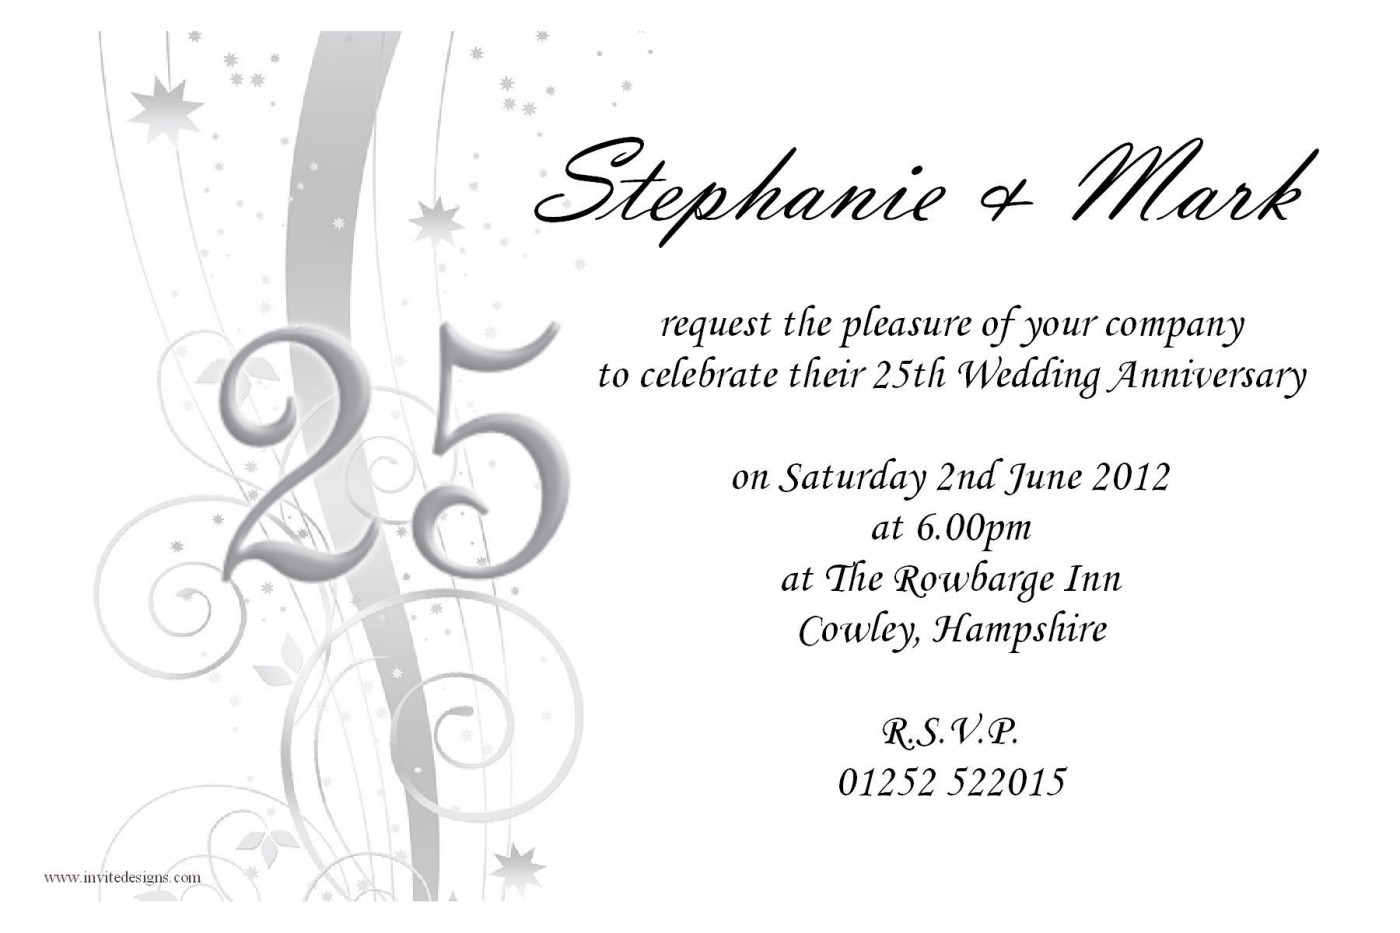 002 Incredible 50th Anniversary Invitation Wording Sample High Definition  Wedding 60th In Tamil Birthday1400